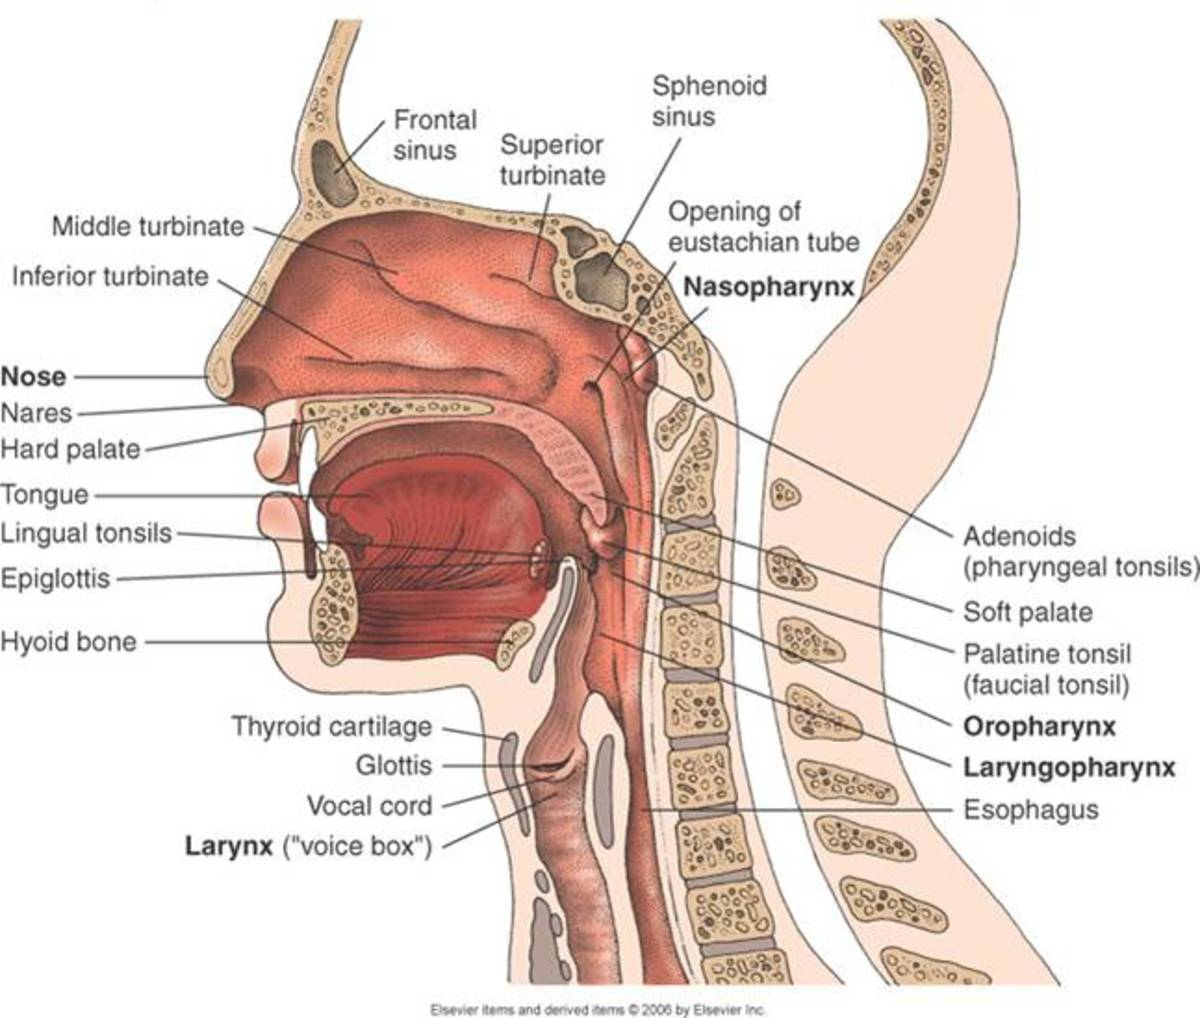 Upper Tract Surgery